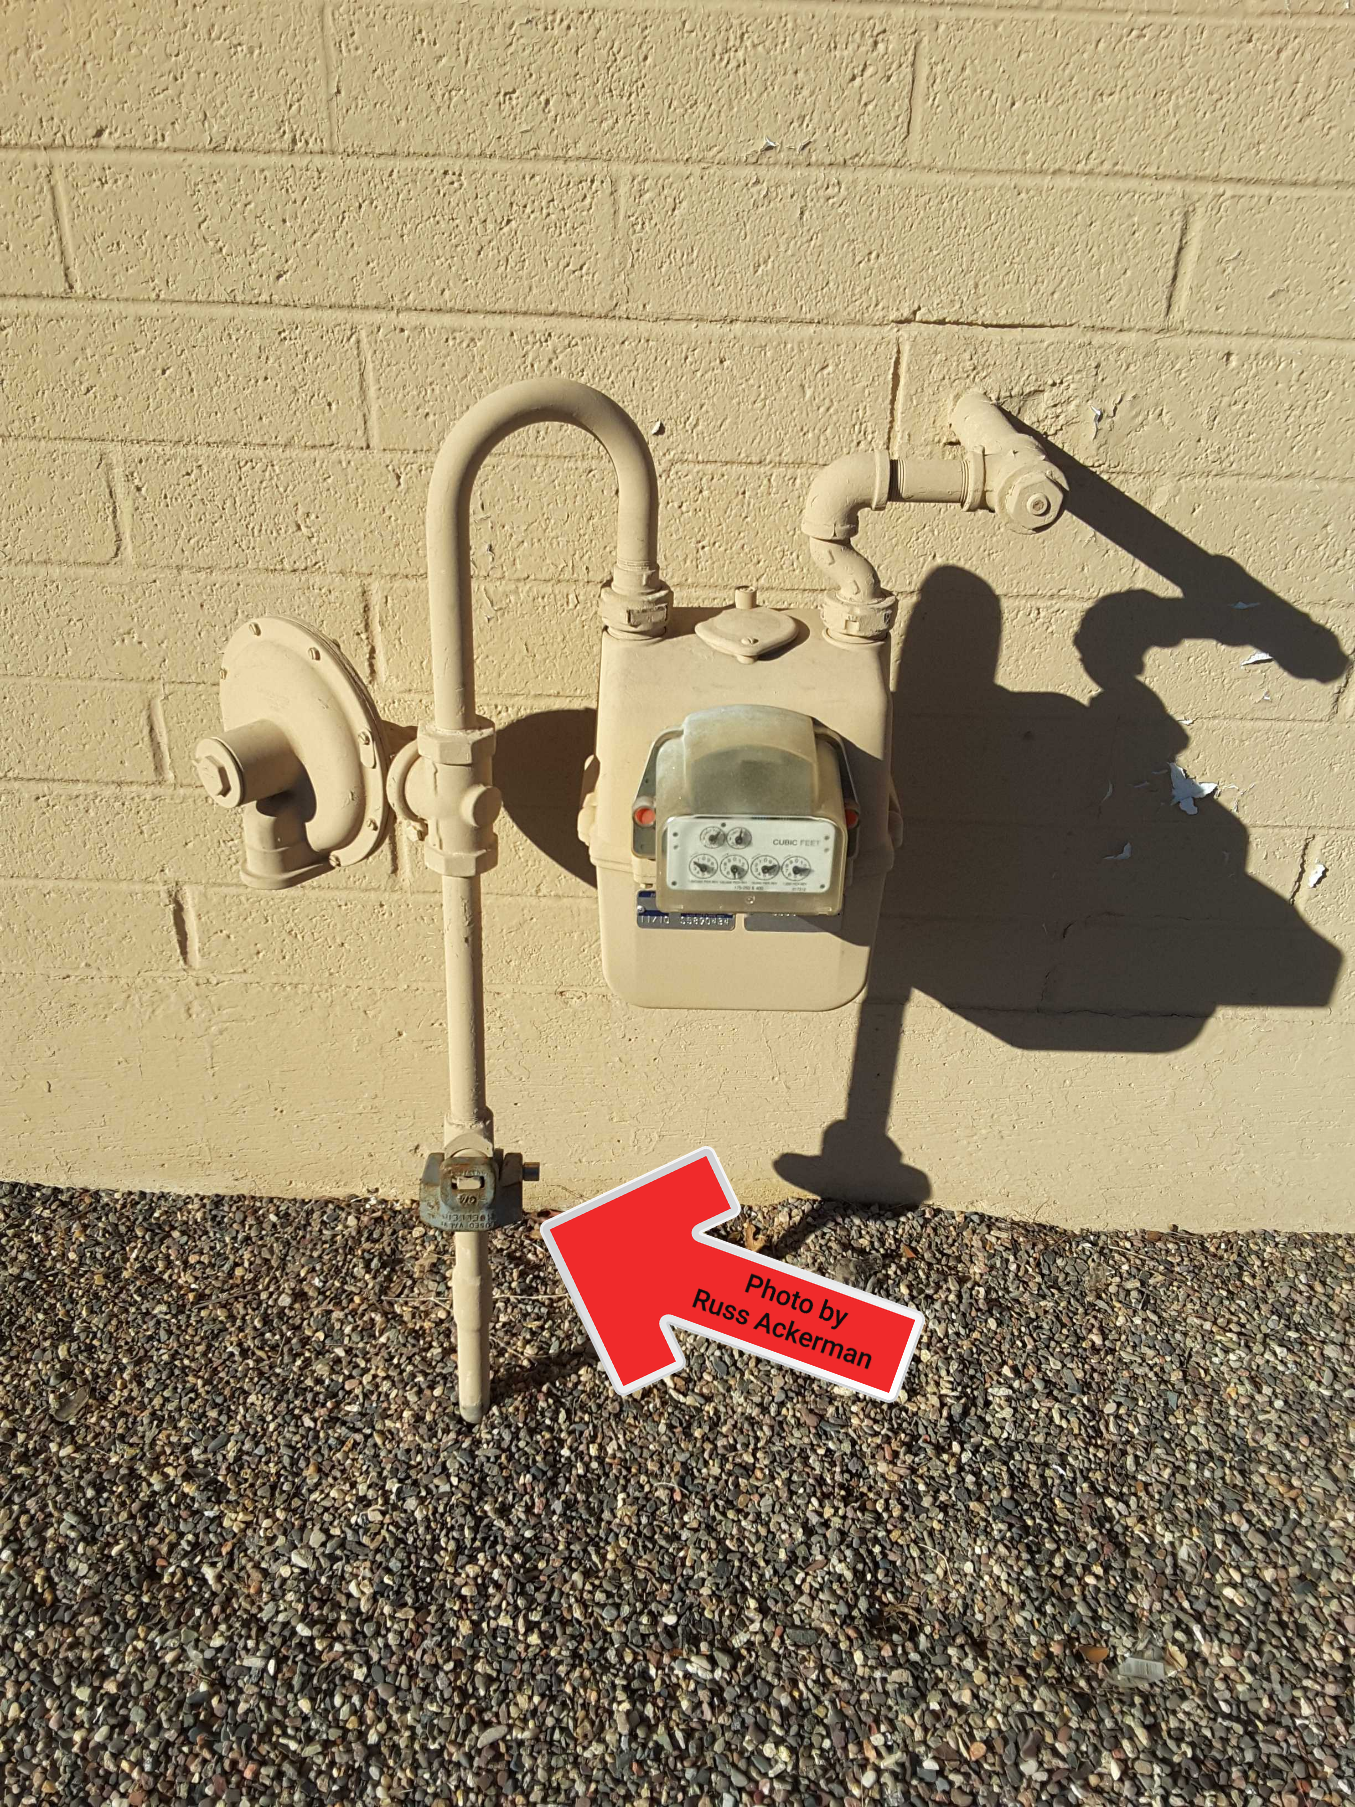 A locked gas valve will greatly limit a home inspection. Proper inspection of water heaters as well as orientation of hot/cold at fixtures will not be possible.